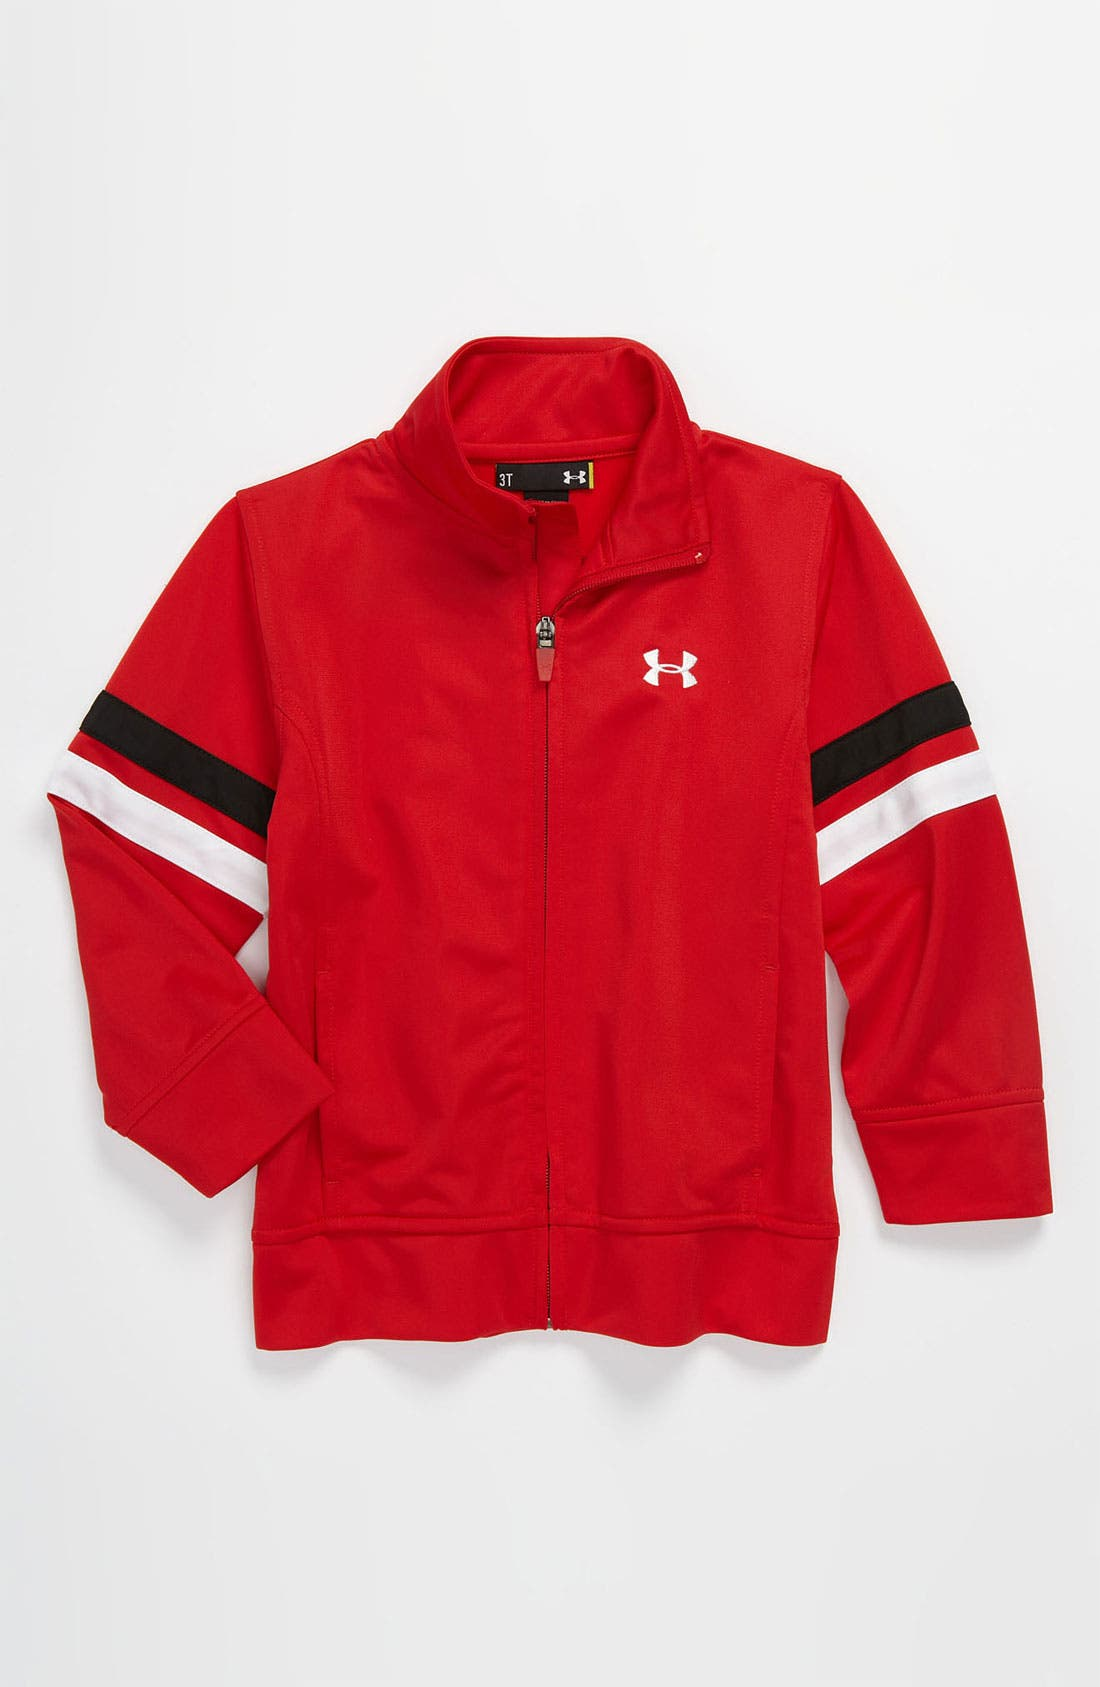 Alternate Image 1 Selected - Under Armour 'Warm-Up' Jacket (Little Boys)